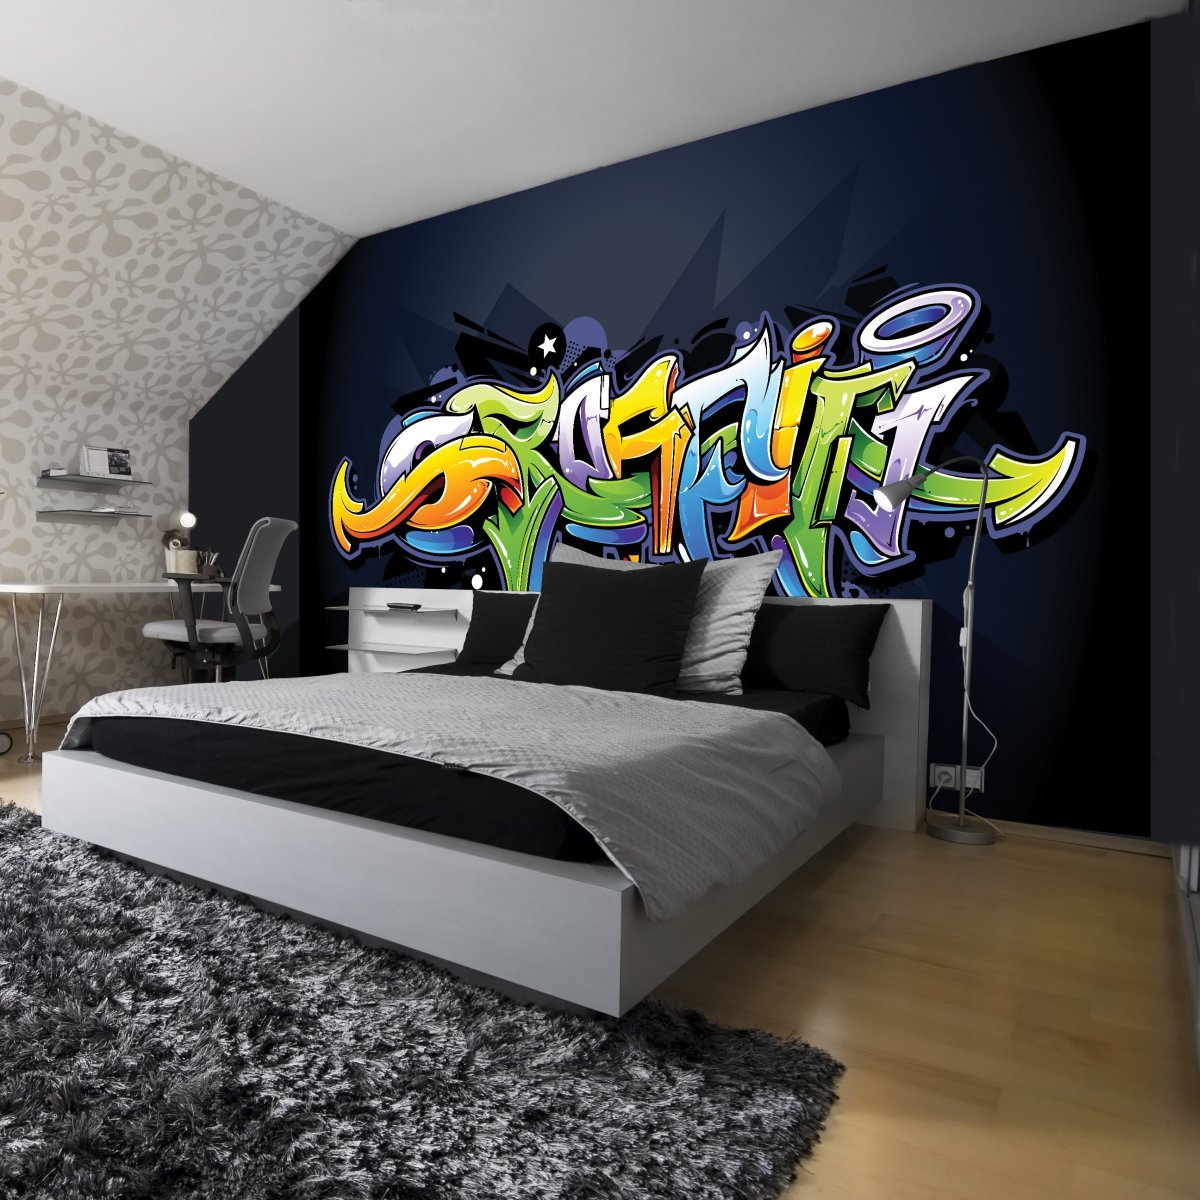 wandtattoo jugendzimmer jungen graffiti. Black Bedroom Furniture Sets. Home Design Ideas